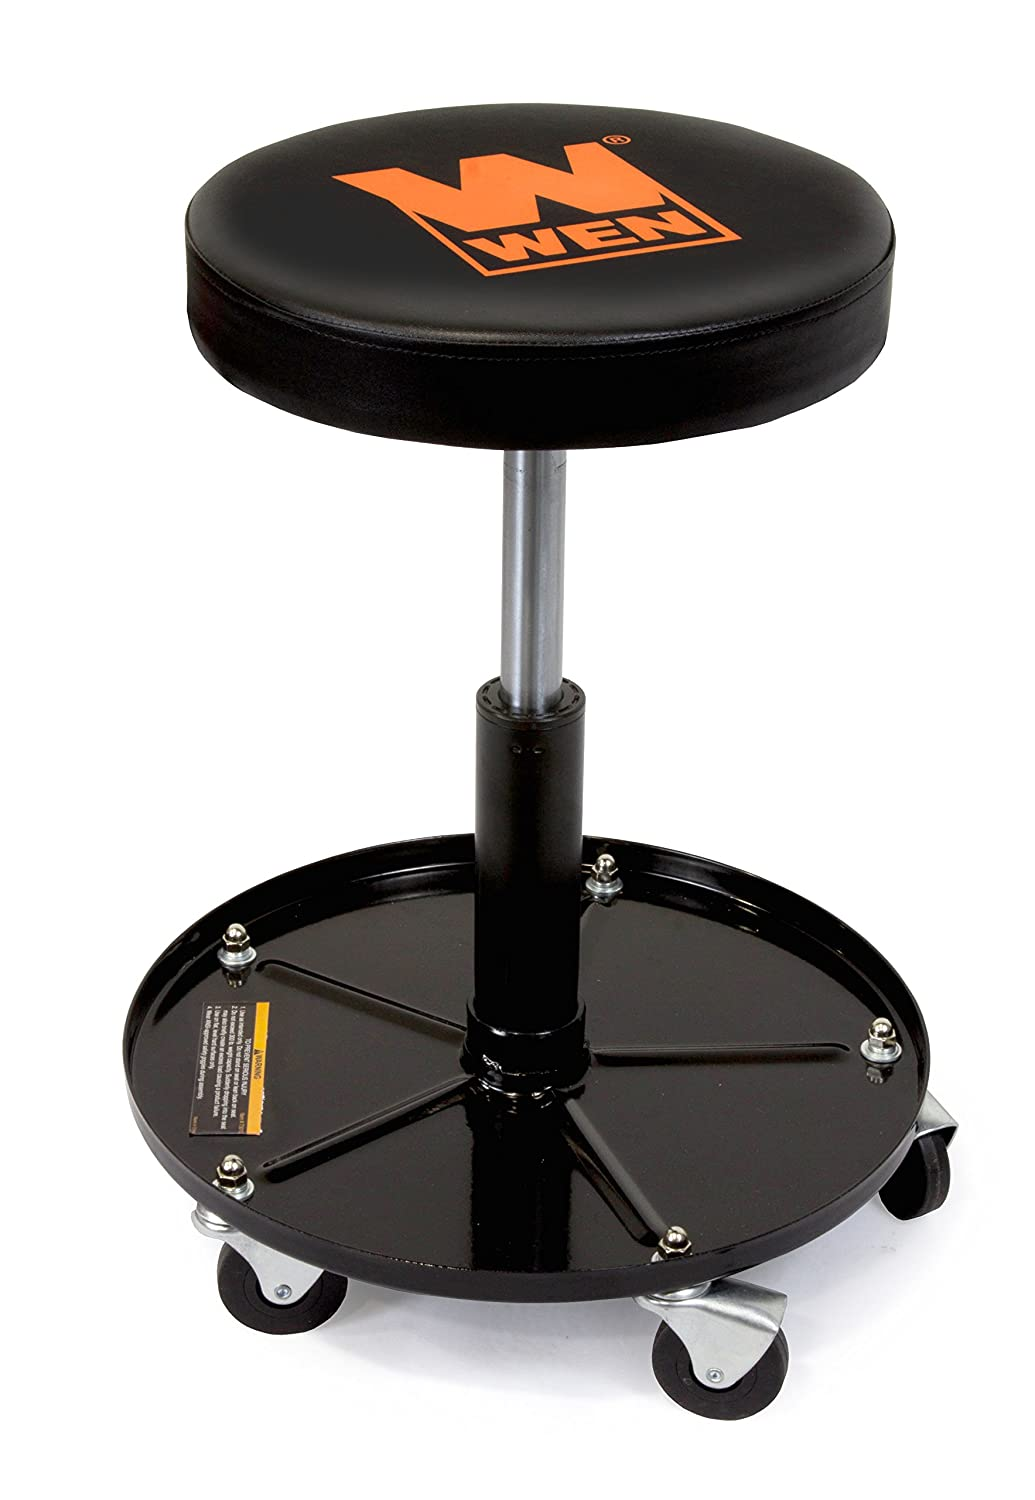 Amazon.com WEN 73012 300 lb Capacity Pneumatic Rolling Mechanic Stool Home Improvement  sc 1 st  Amazon.com & Amazon.com: WEN 73012 300 lb Capacity Pneumatic Rolling Mechanic ... islam-shia.org